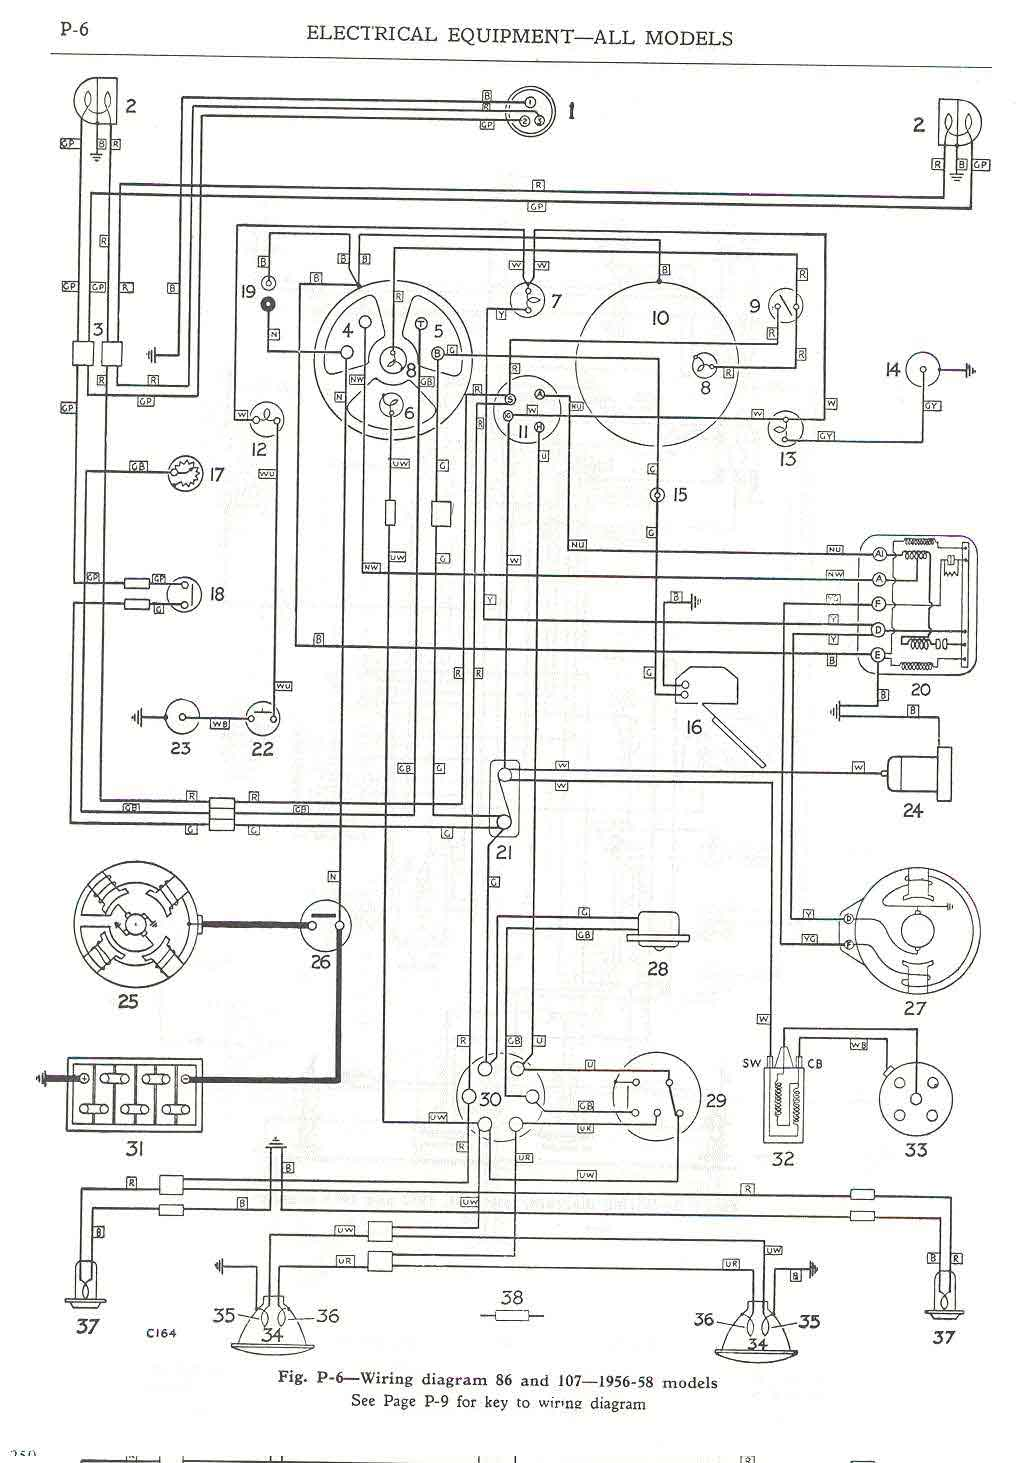 series 3 land rover wiring diagram series 1 land rover wiring diagram #1